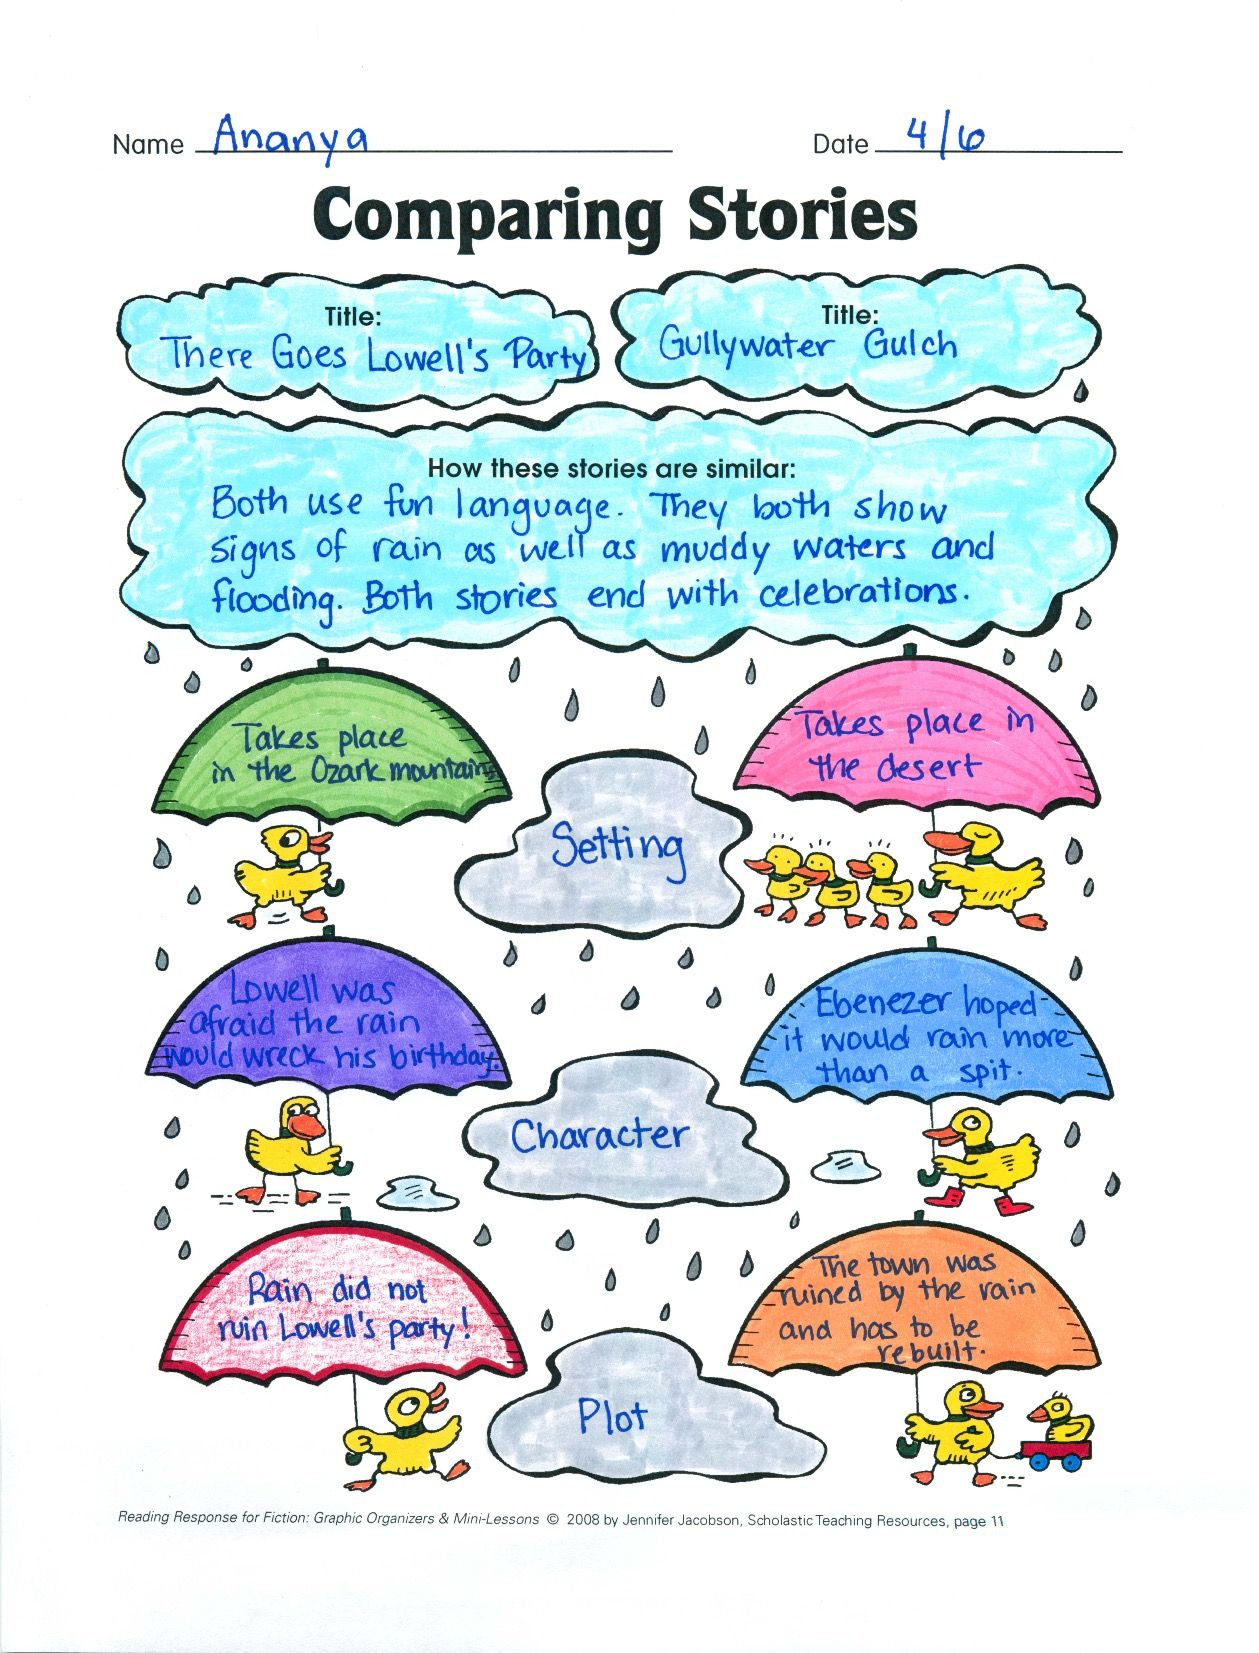 Comparing Stories Story Elements Graphic Organizer Rl 2